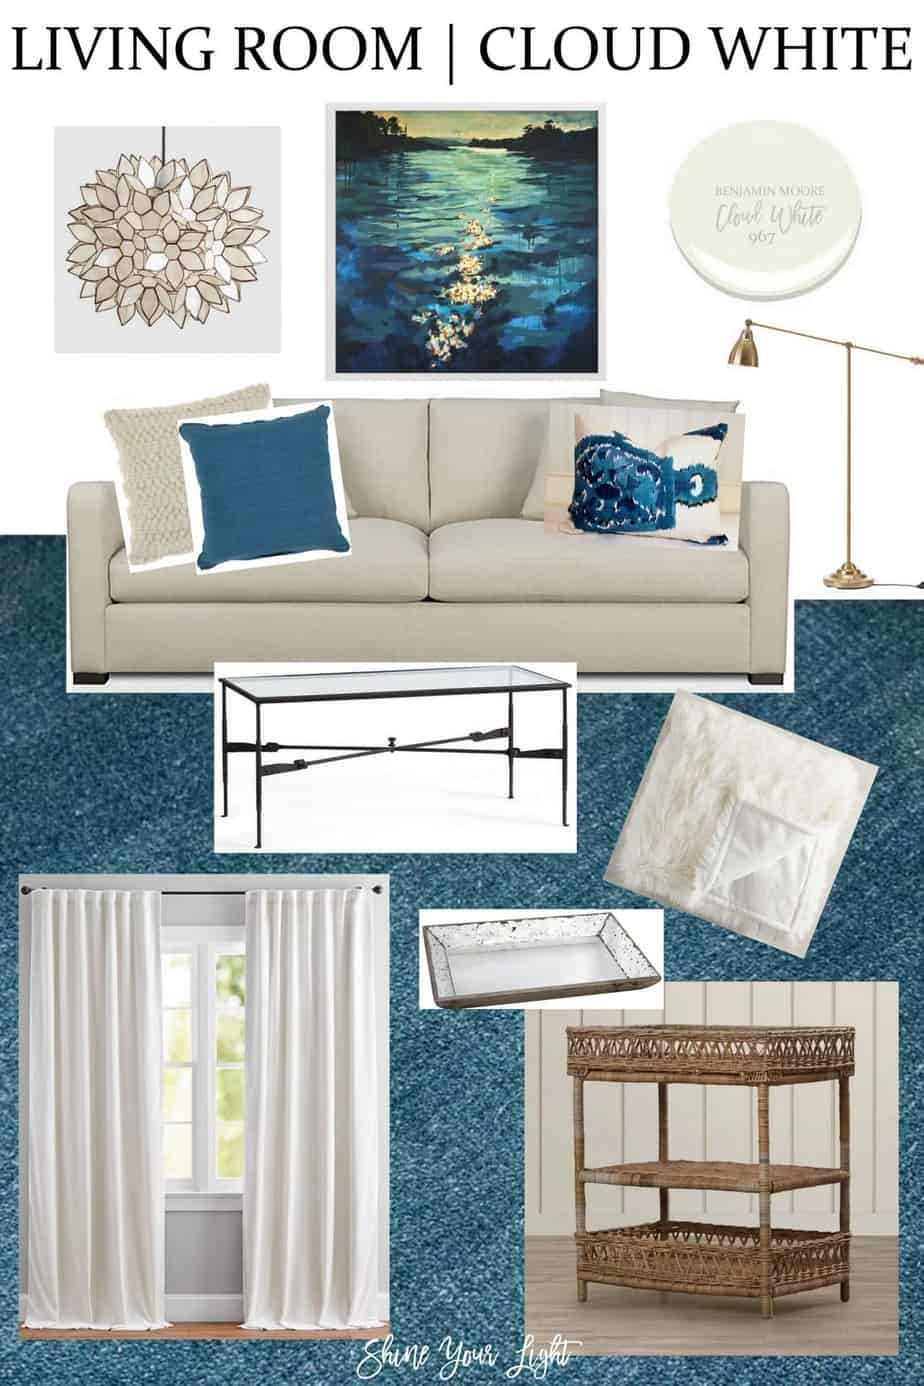 Living Room Design In Cream & Teal Shine Your Light